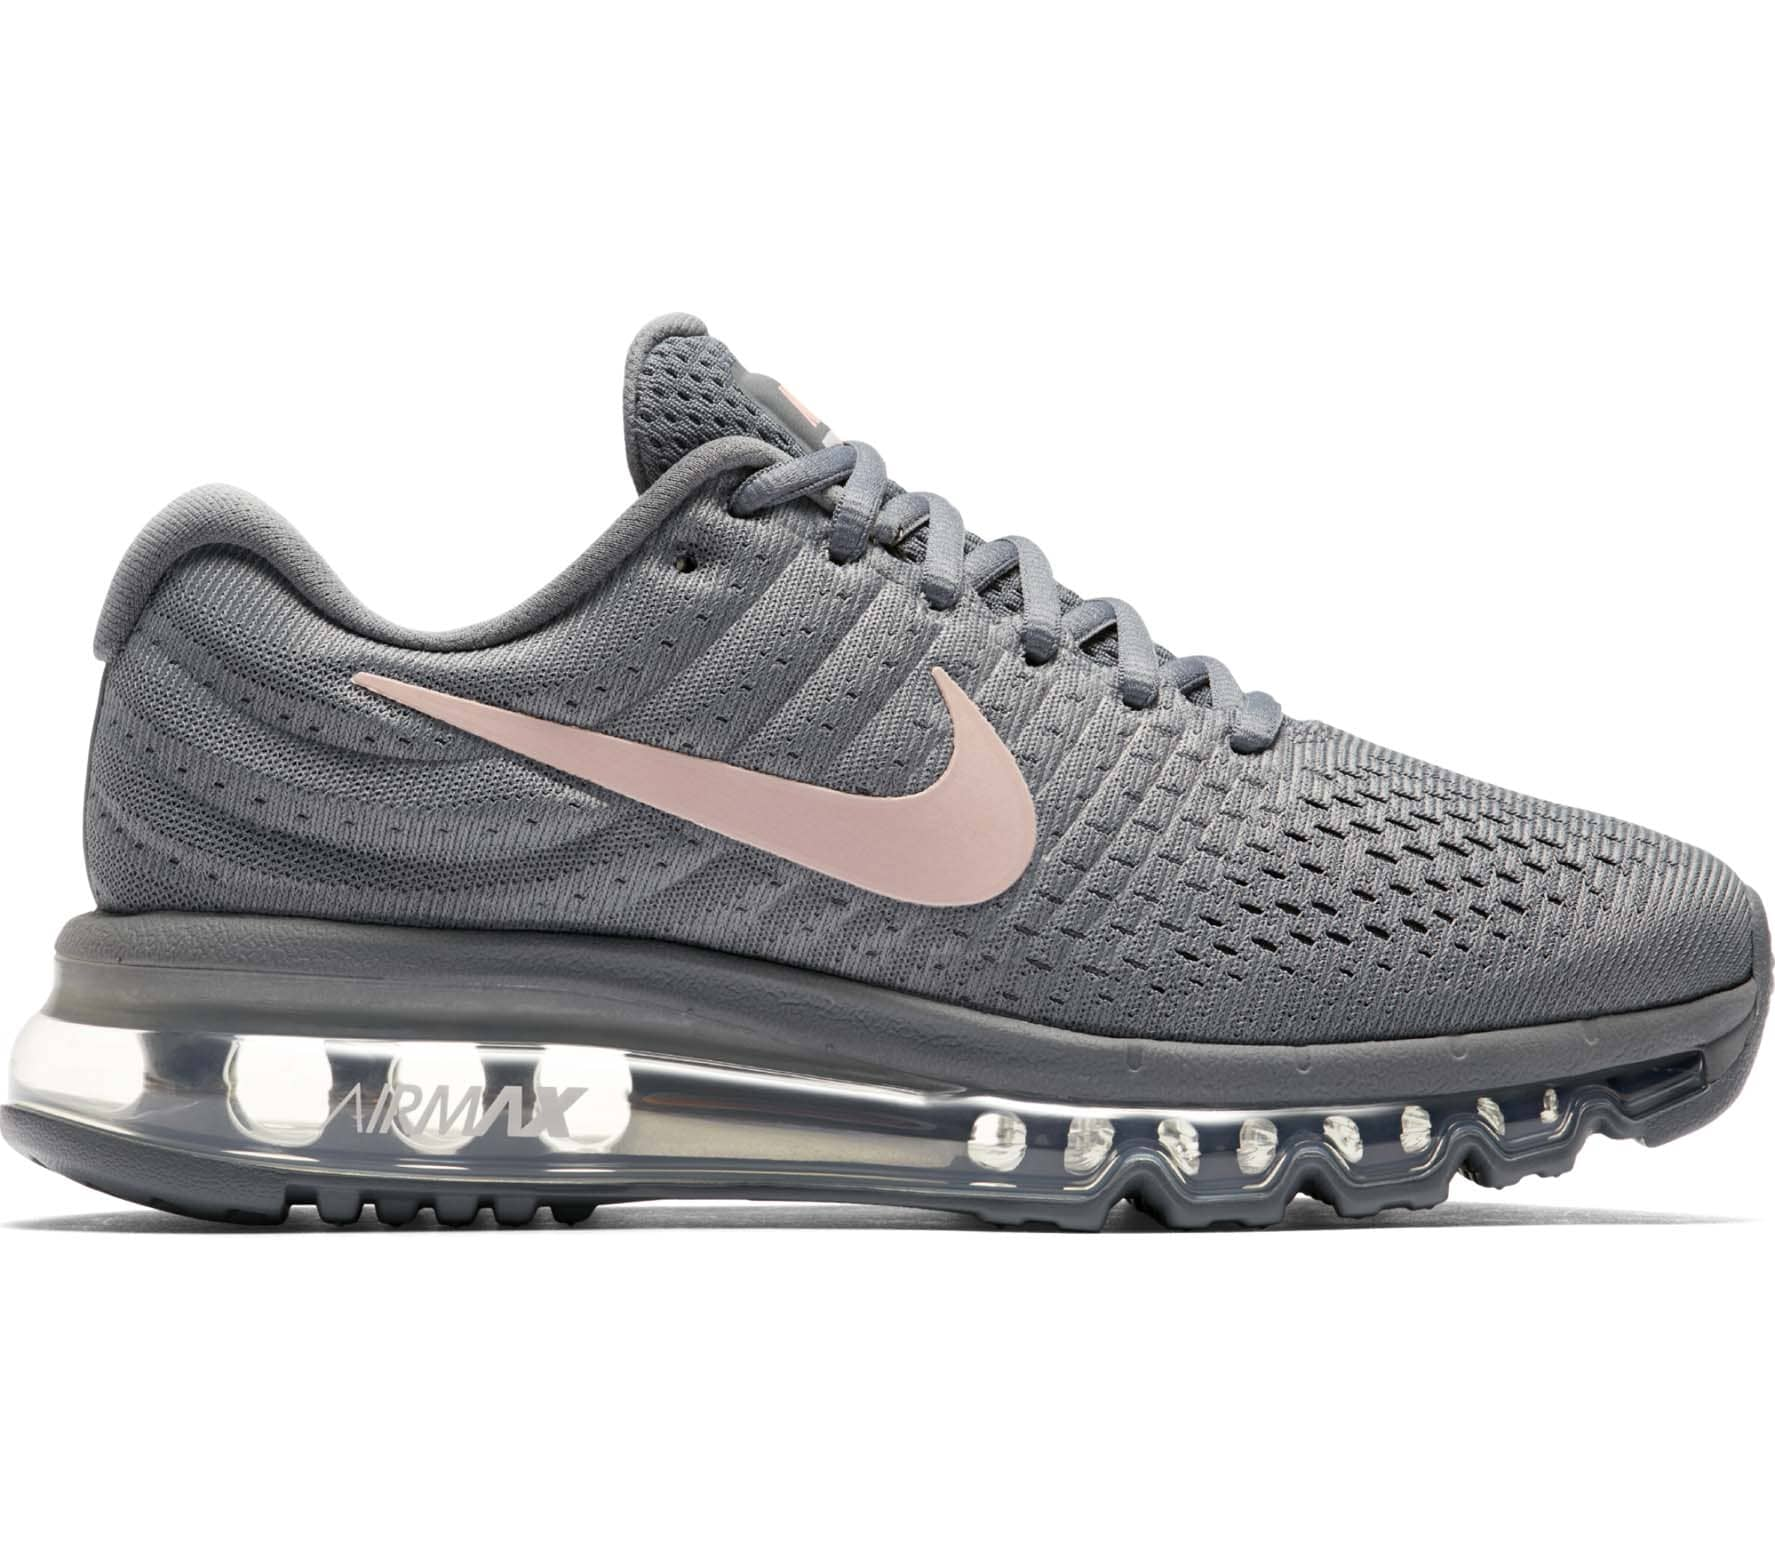 uk availability bfc0c 31cf1 Nike - Air Max 2017 Mujer Zapatos para correr (grisrosado)